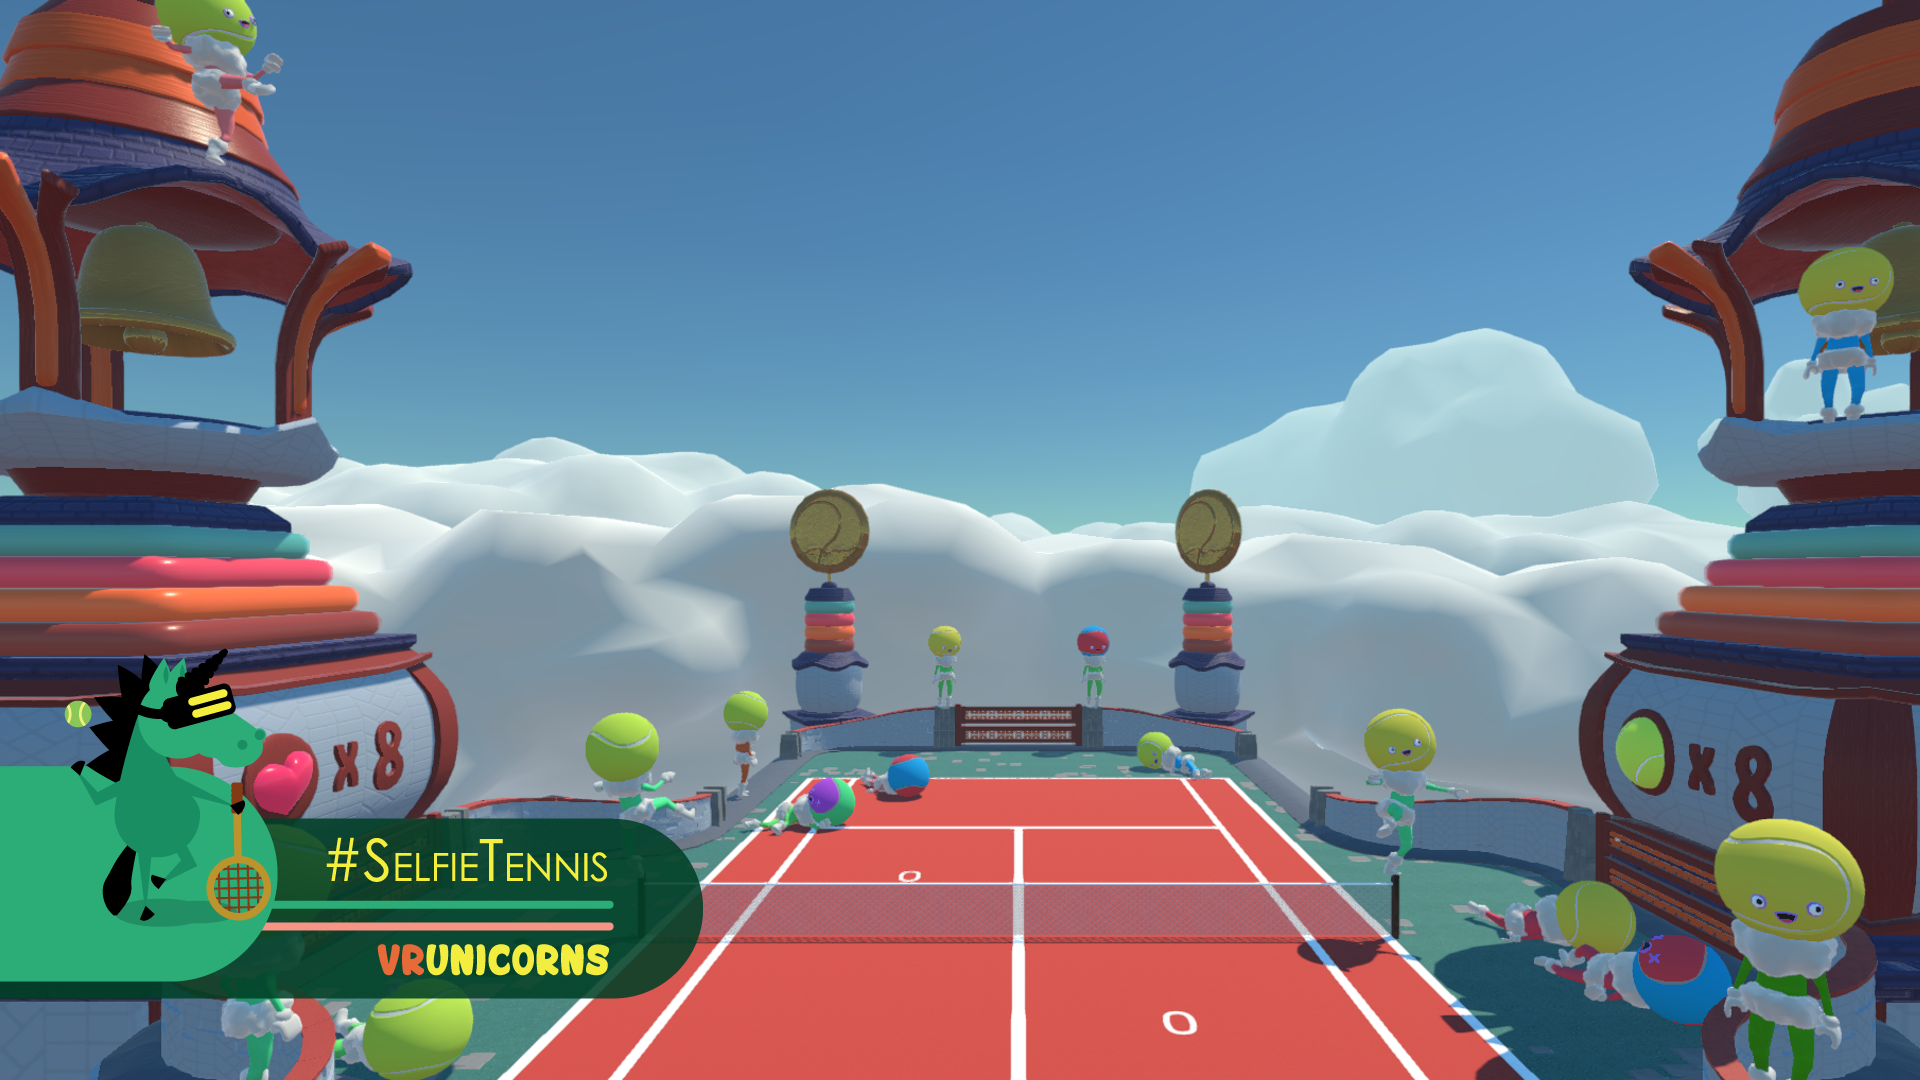 Developer VR Unicorns offers a tennis game for HTC Vive that you play against yourself.